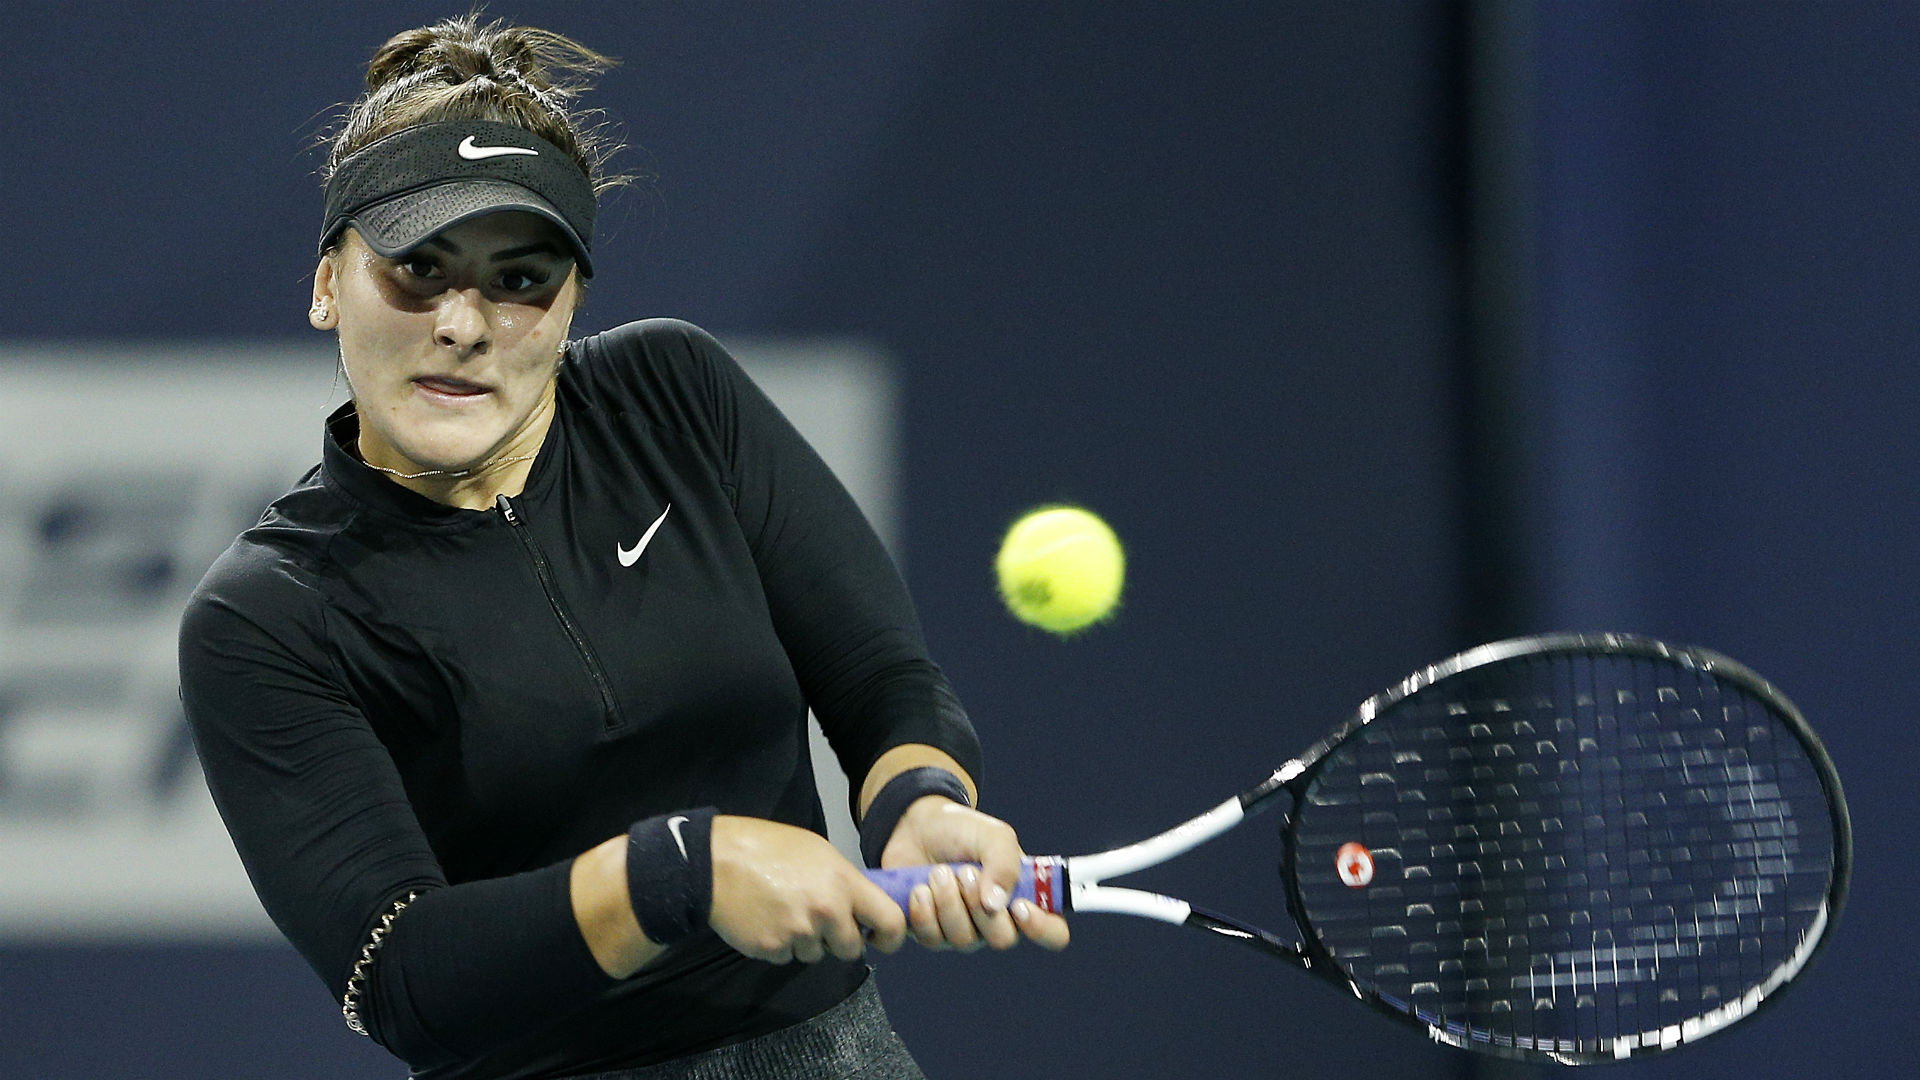 Miami Open 2019: Bianca Andreescu upstages Angelique Kerber again, advances to fourth round